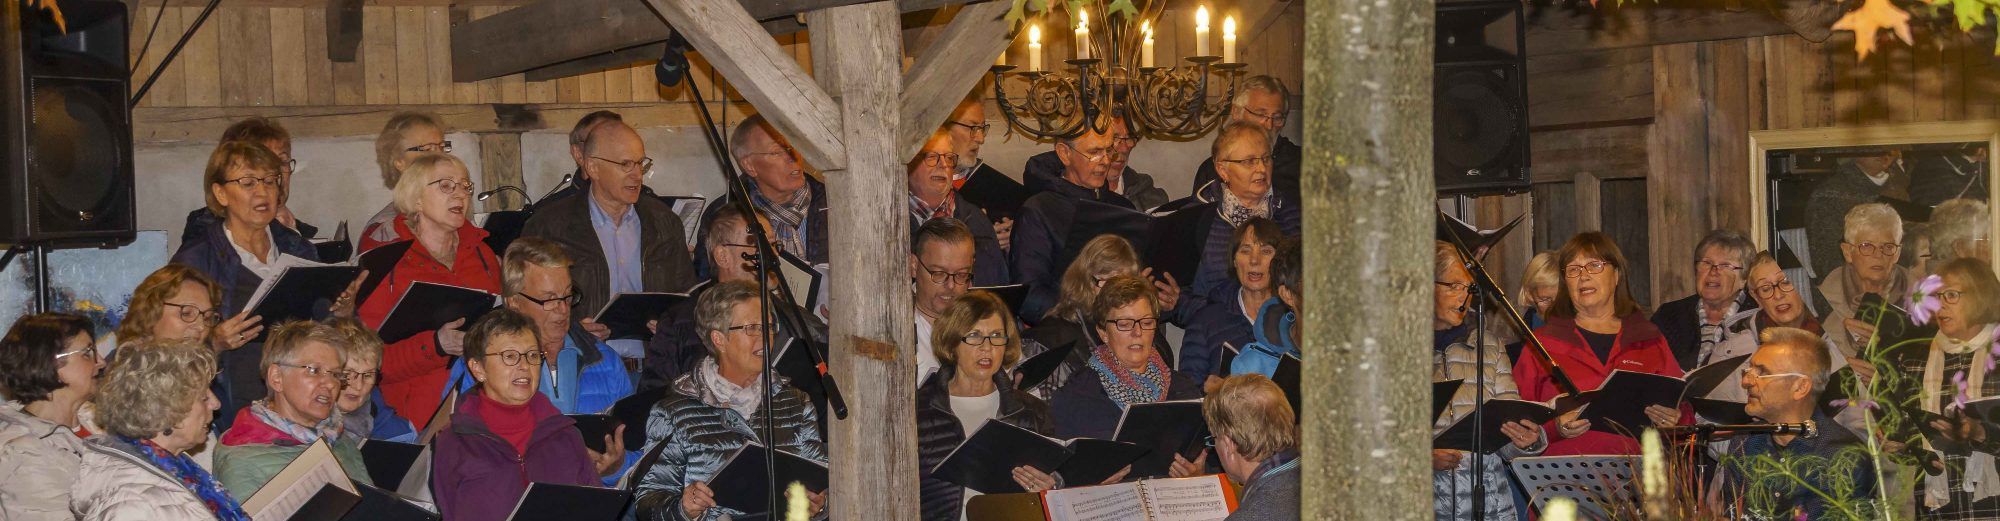 Singing Voices Rhede